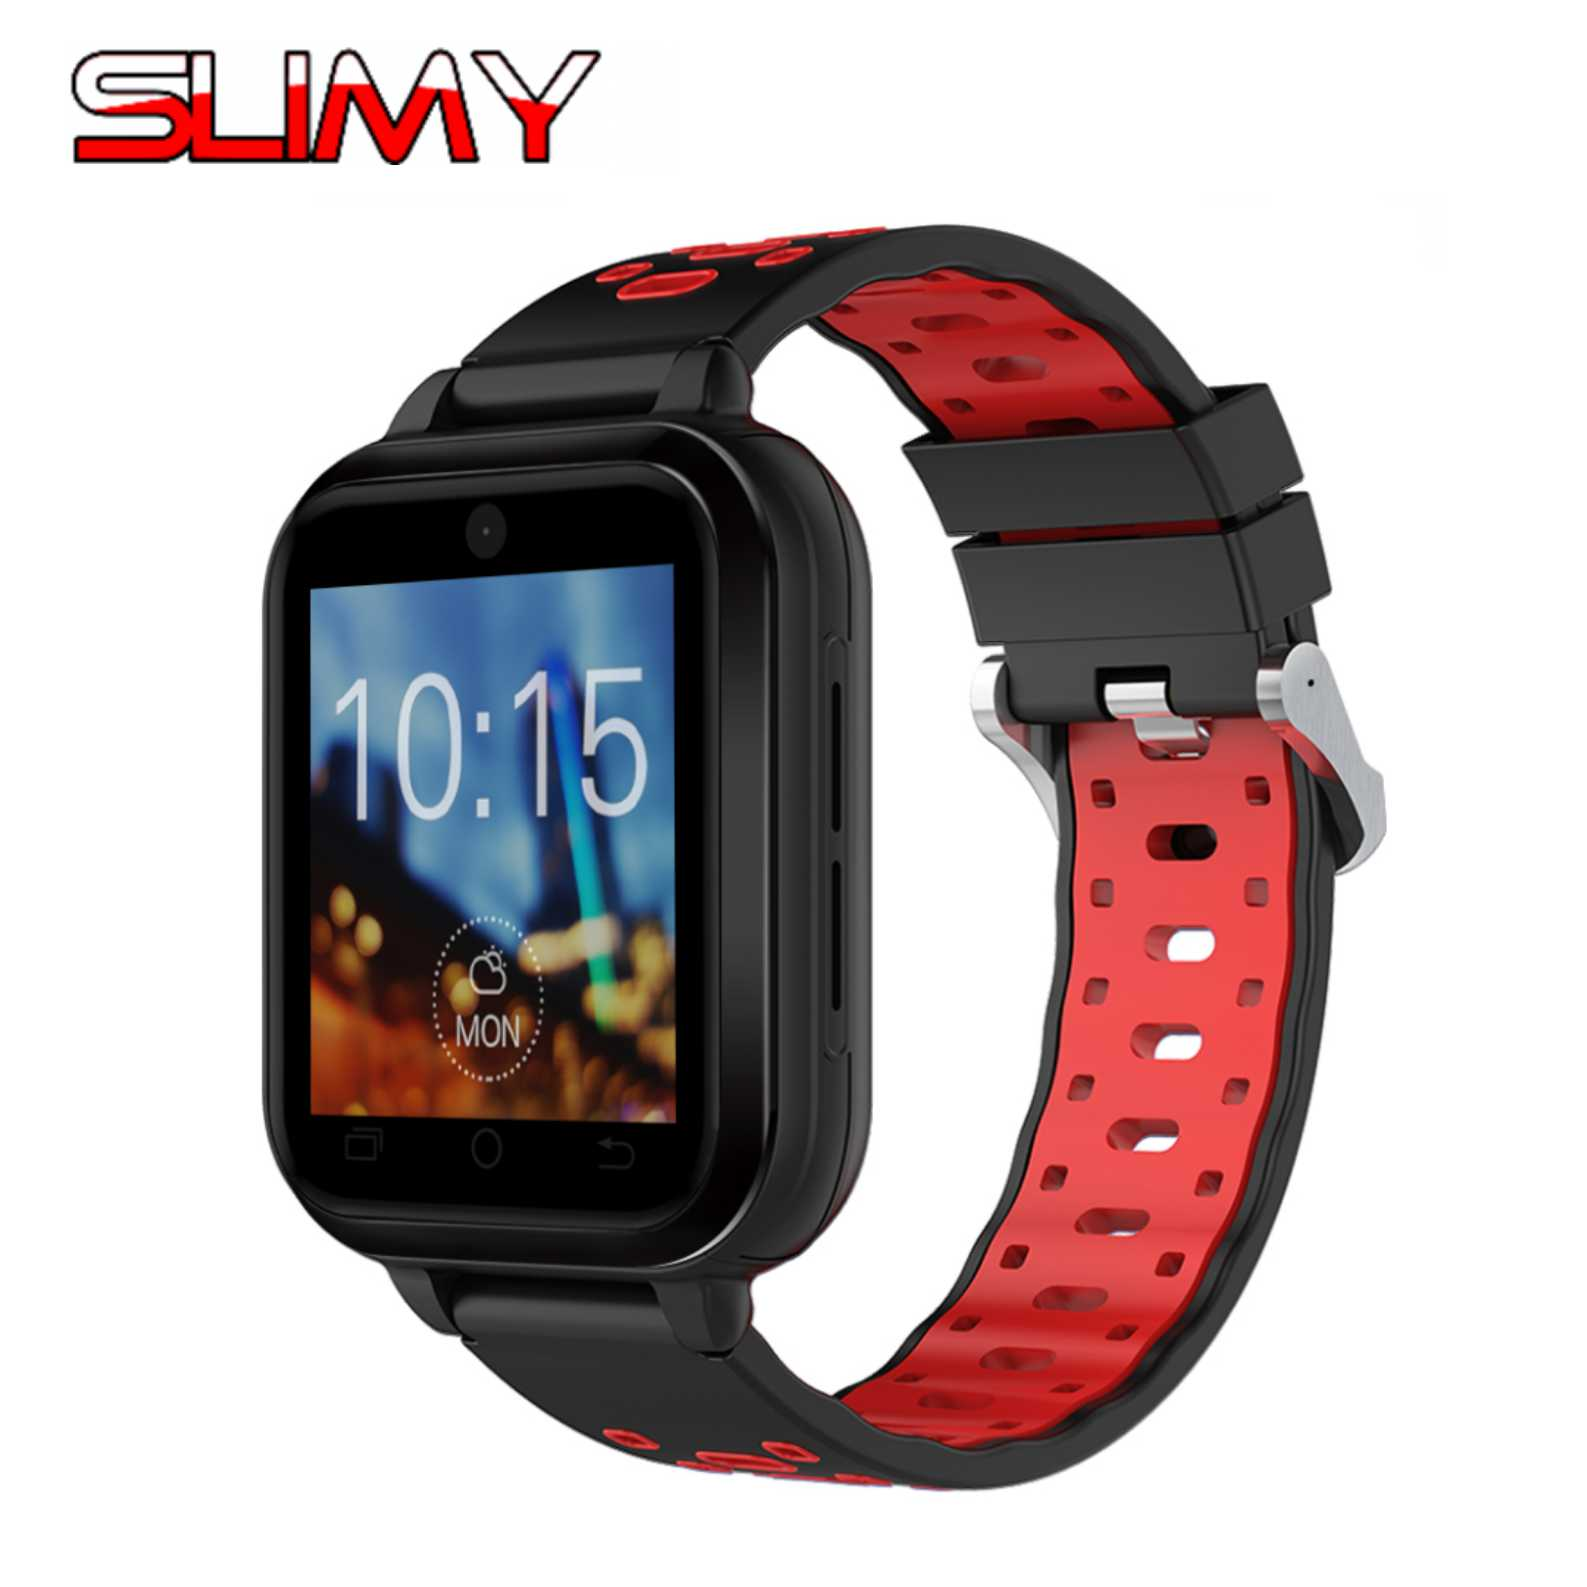 Slimy 4G IP67 Waterproof Smart Watch Android 6.0 OS MTK6737 RAM 1GB ROM 8G WIFI GPS Wristwatch Support Nano SIM Card Heart rate 4g gps android 6 0 smart watch m5 mtk6737 heart rate monitor support sim card camera business smartwatch for men women 2018 gift